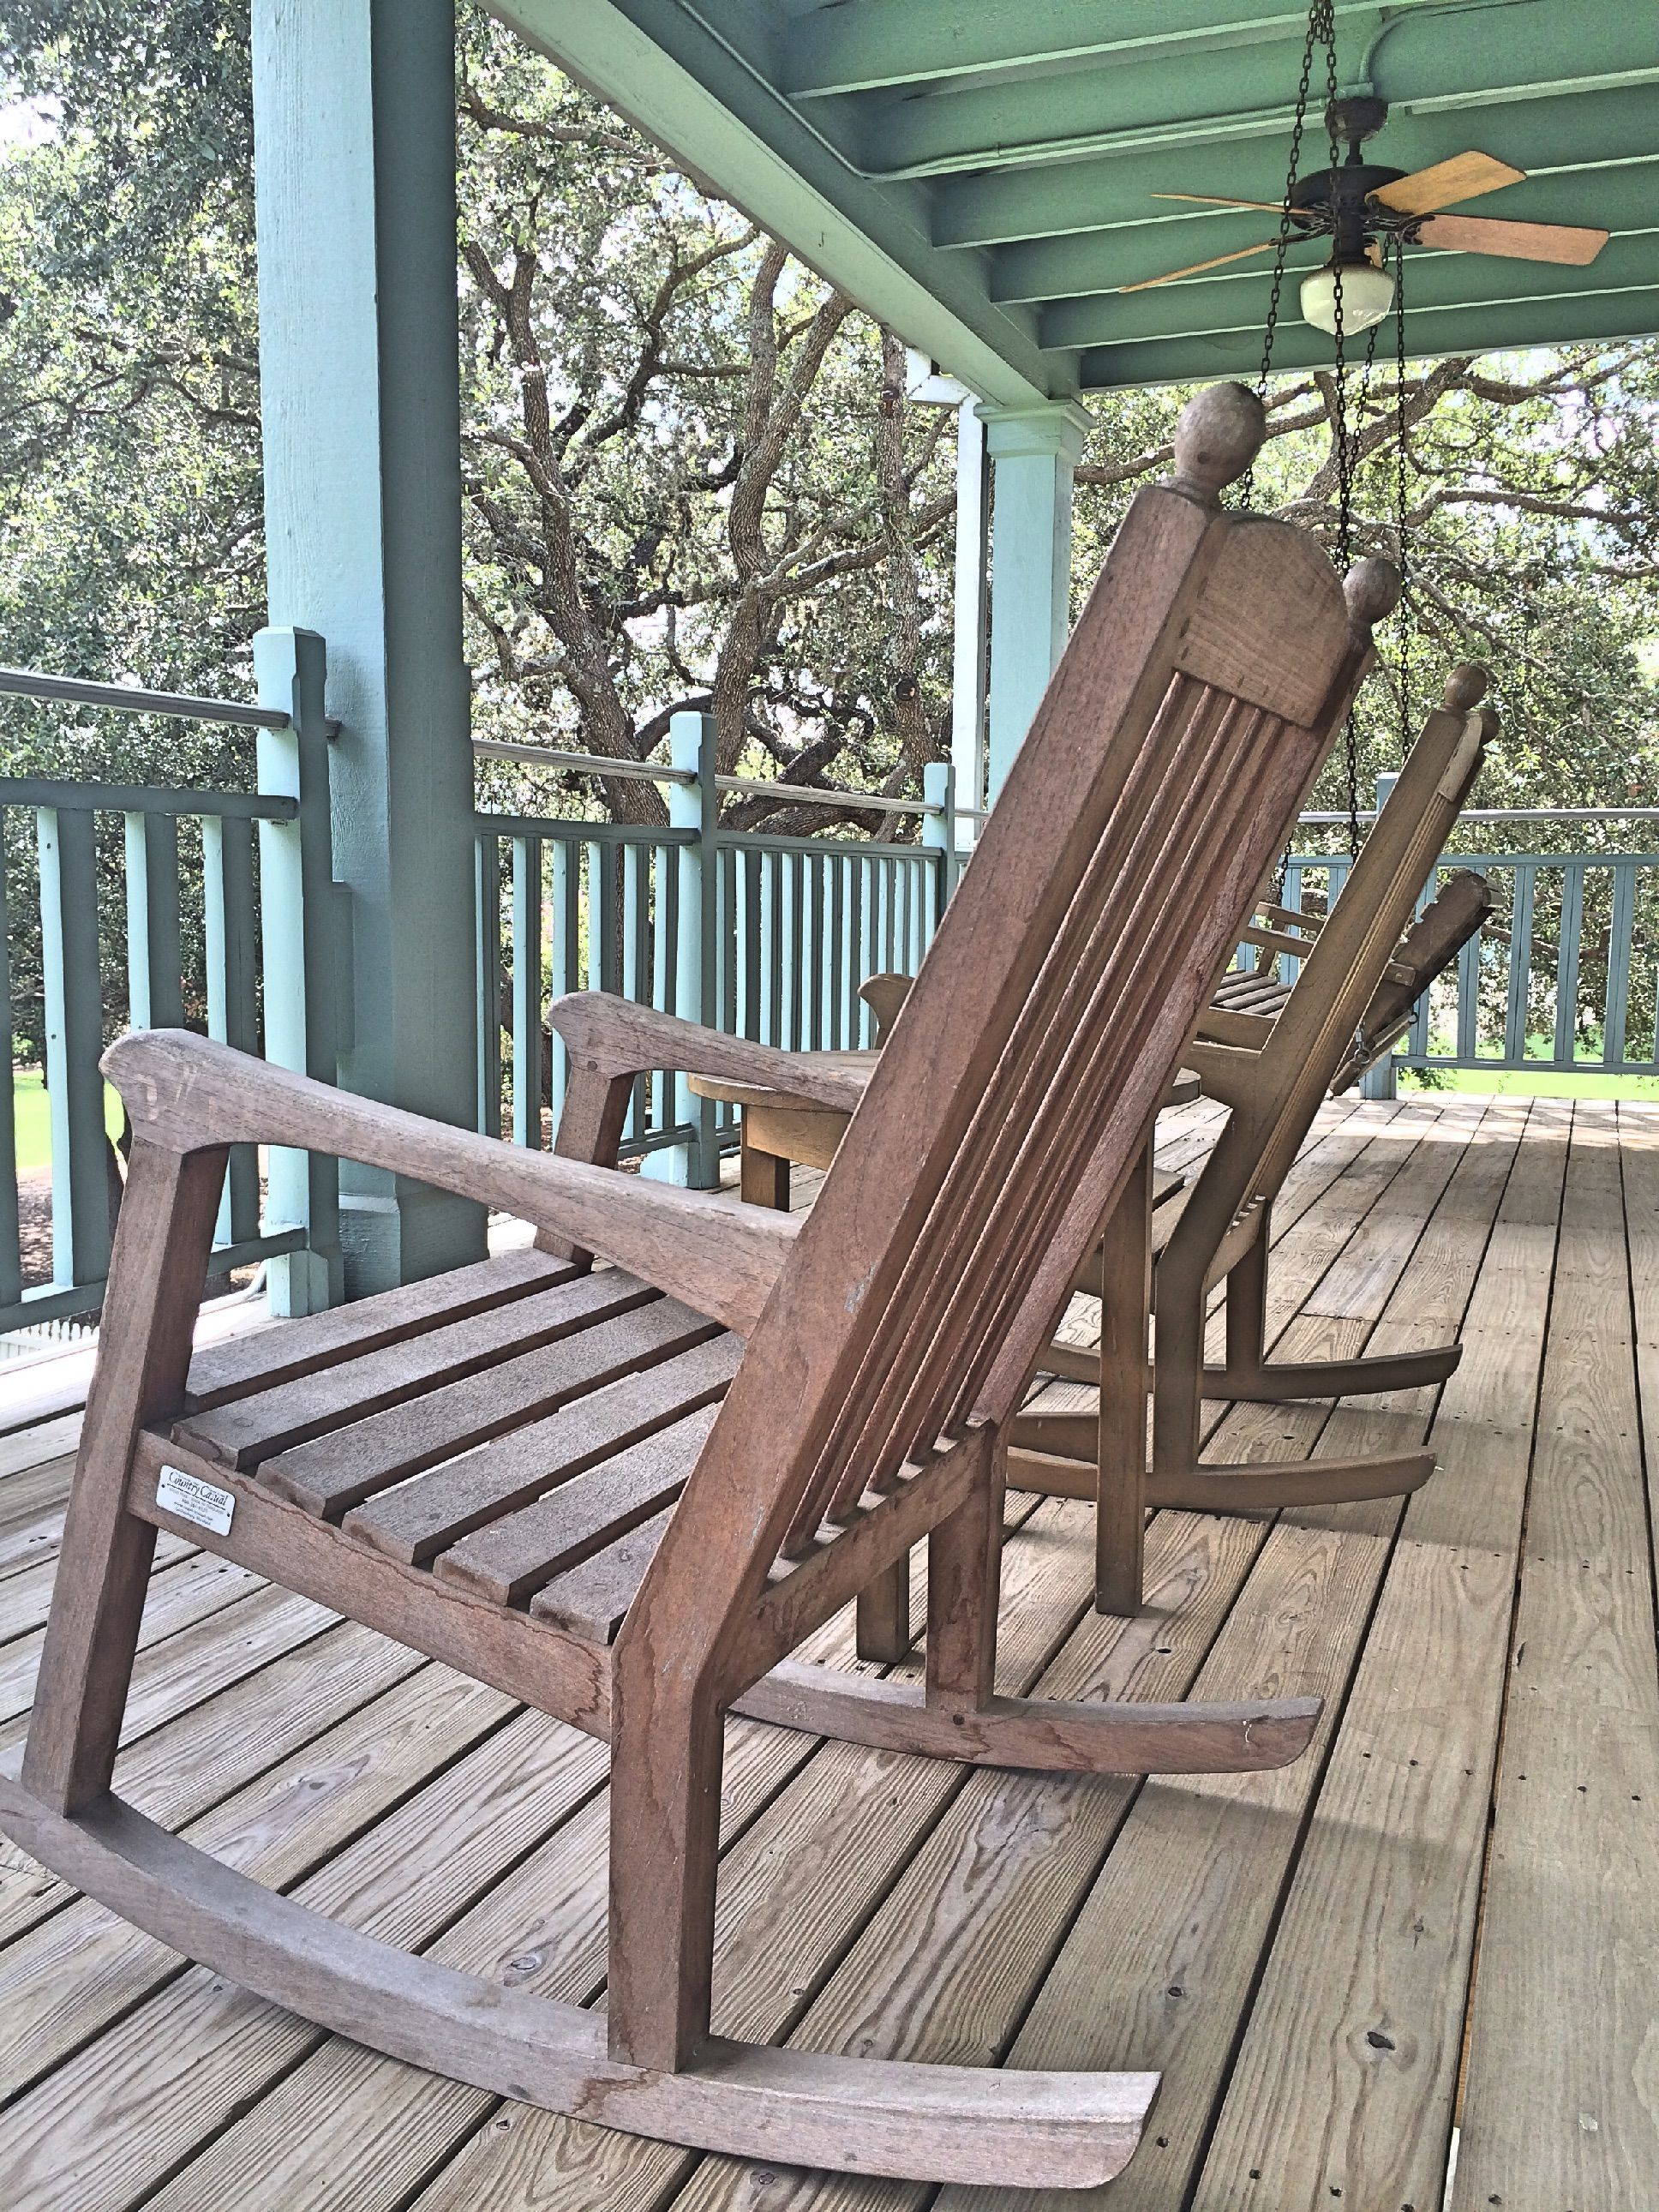 Rocking Chairs Sunday House Texas Hill Country San Antonio Resorts Texas Travel Country Porch Ranch House Outdoor Chairs